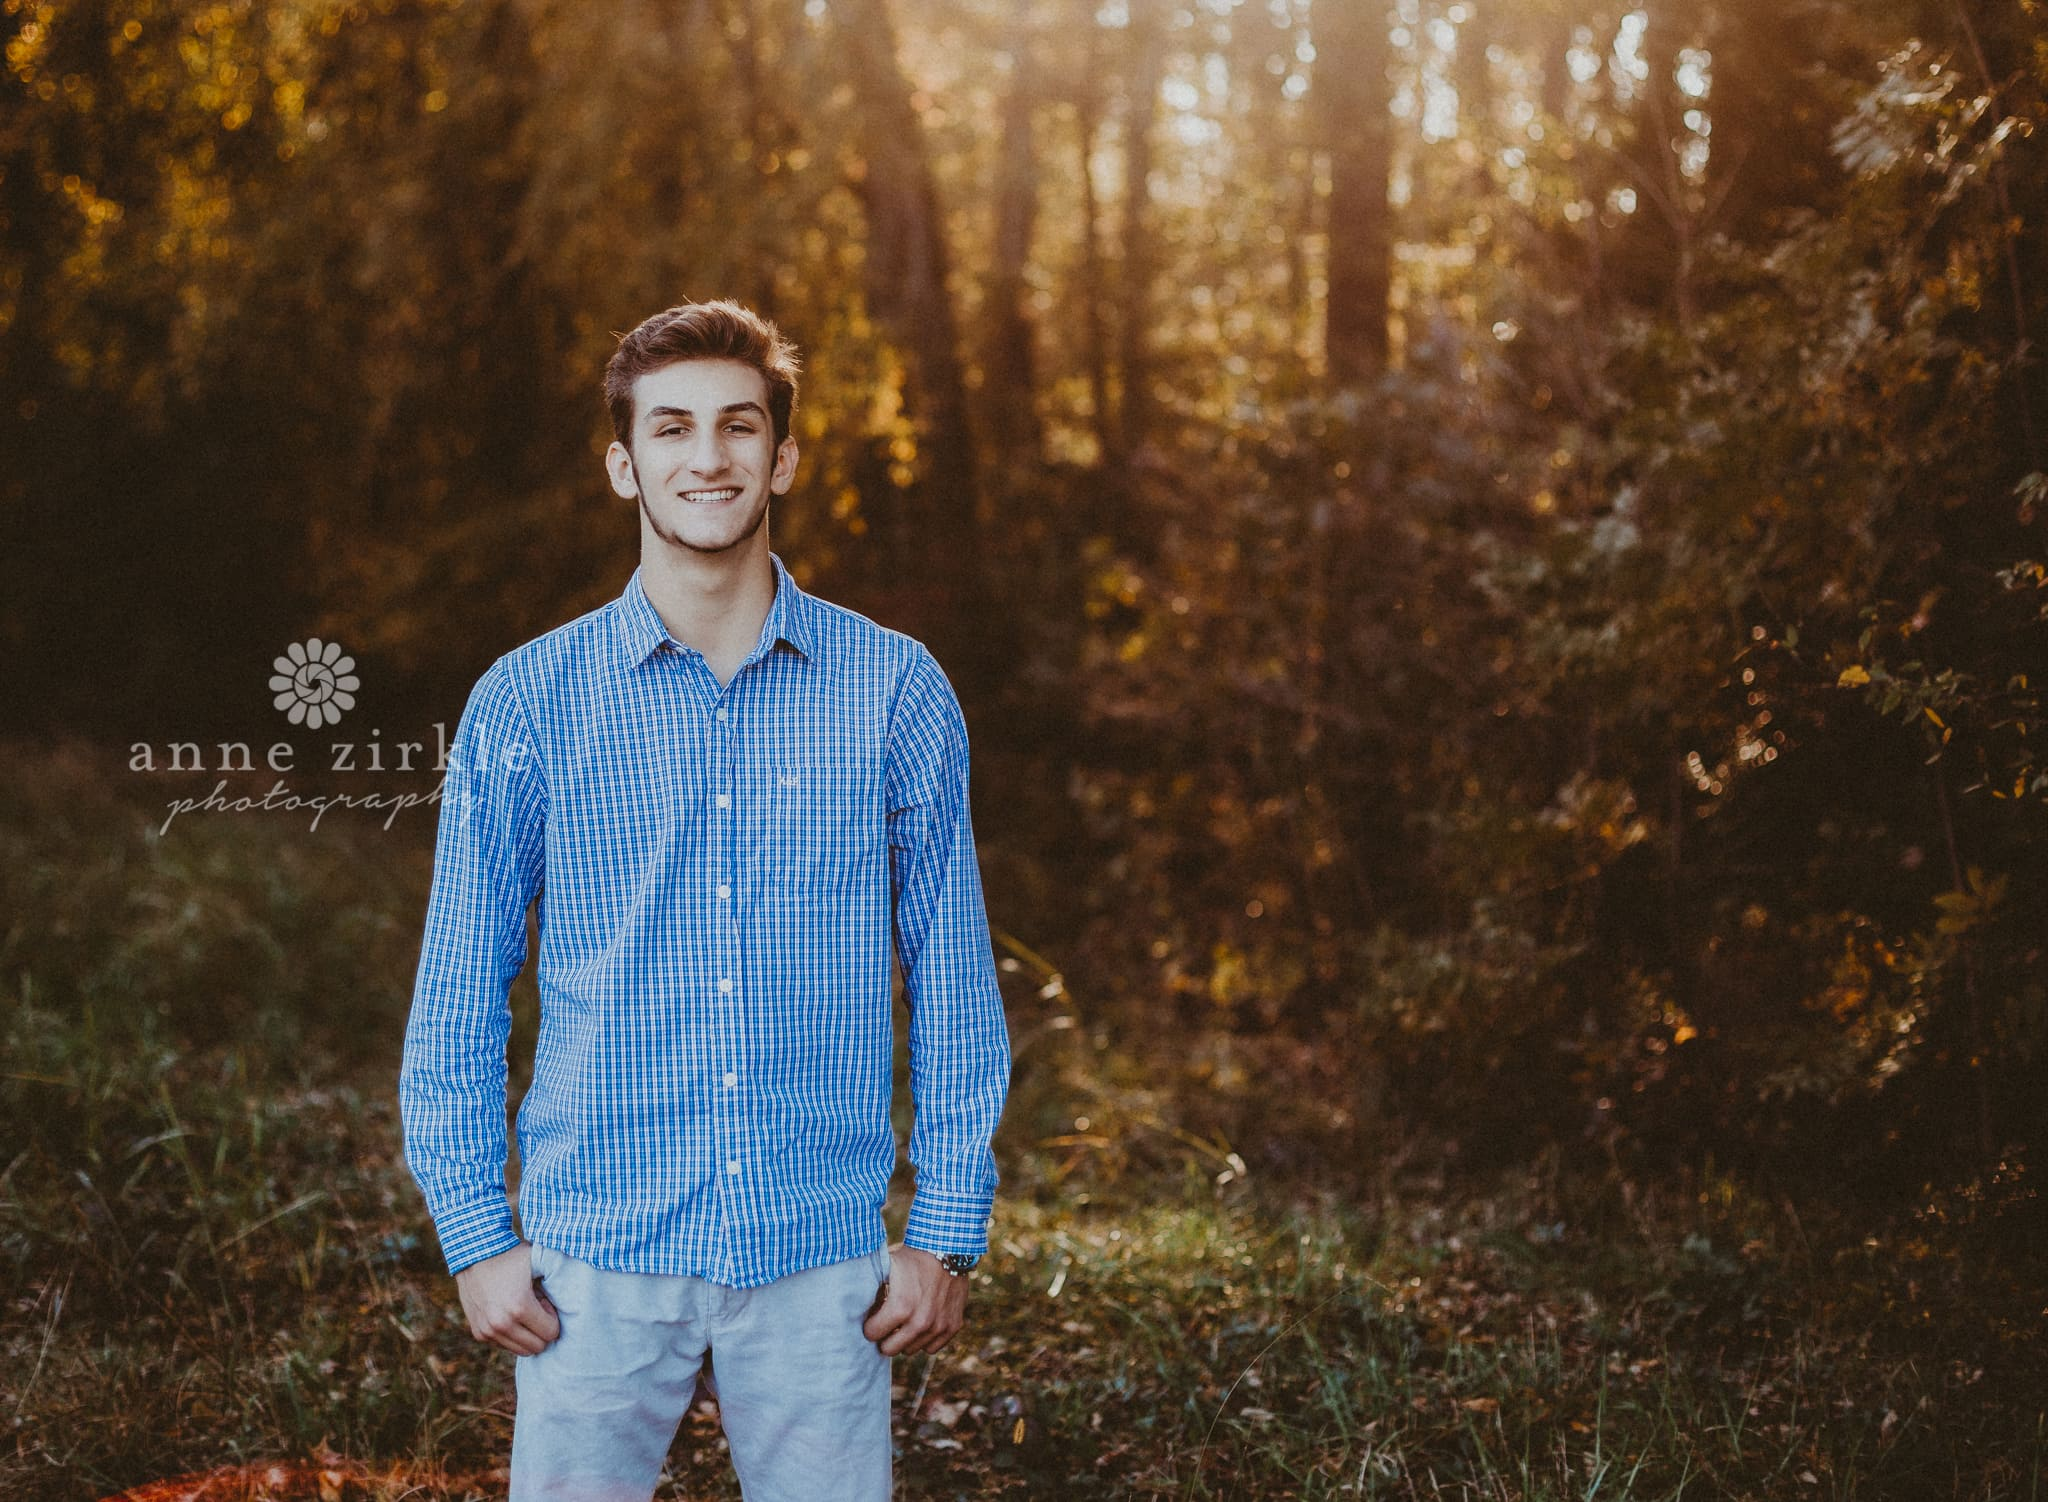 senior boy standing in woods #mooresville #northcarolina #davidson #lakenorman #southiredell #pinelakeprep #highschool #highschoolsenior #highschoolseniors #seniors